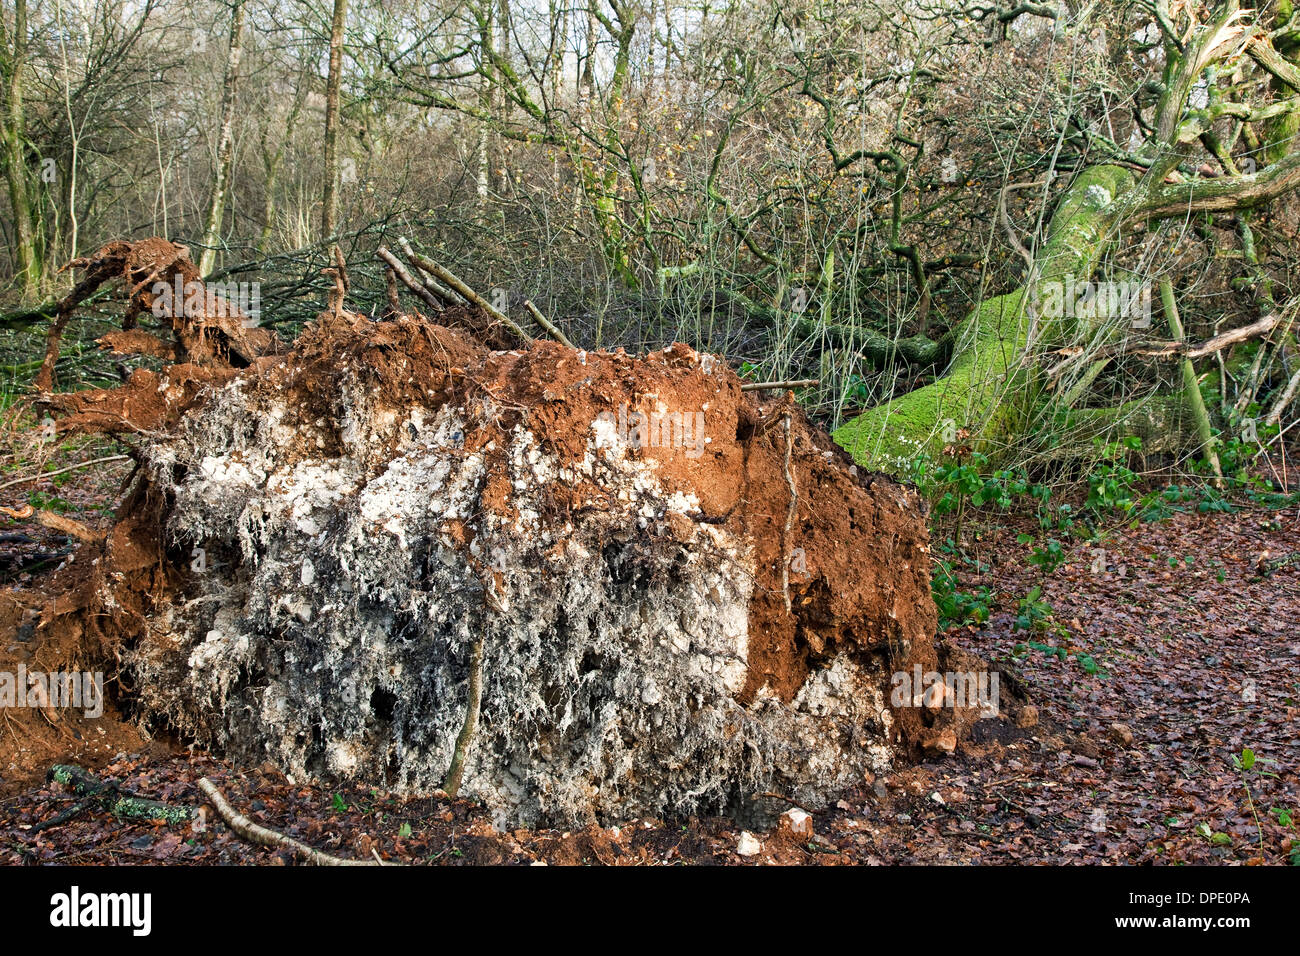 A fallen tree blown over by the wind in woodland - Stock Image